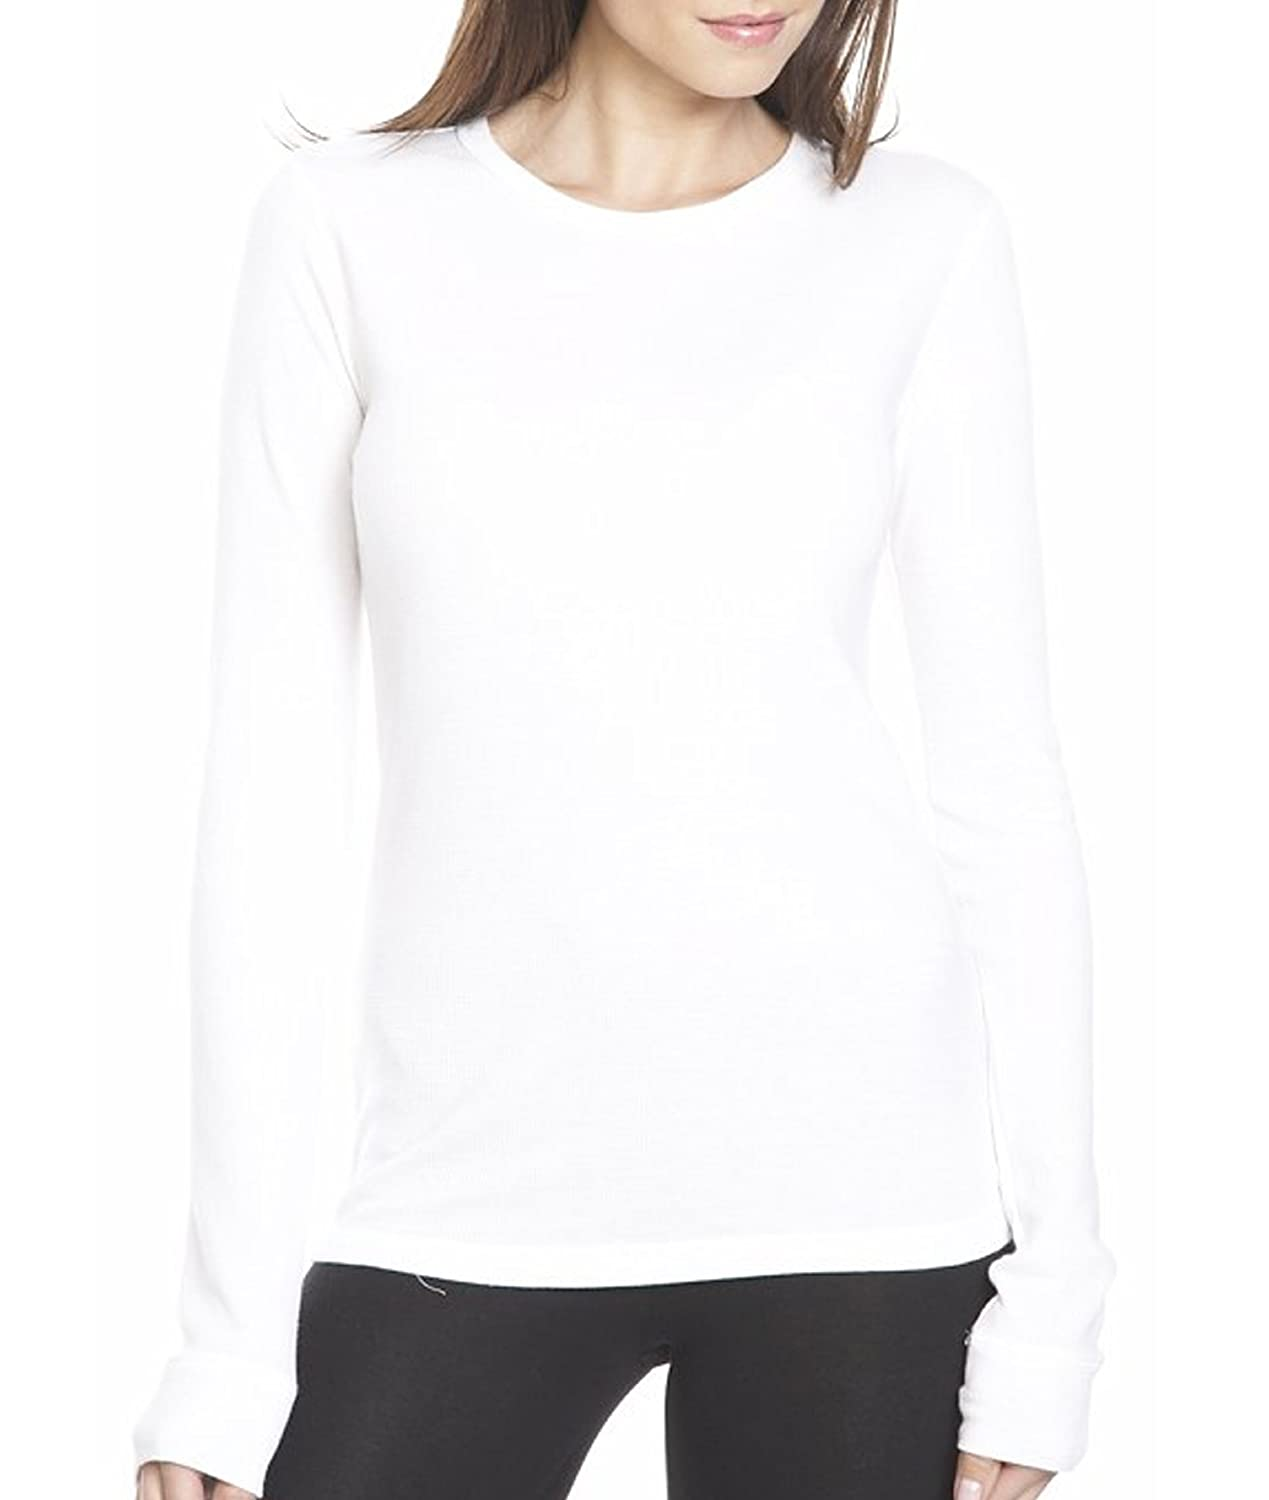 Next Level Women's Next Level Soft Long-Sleeve Thermal (N8001)